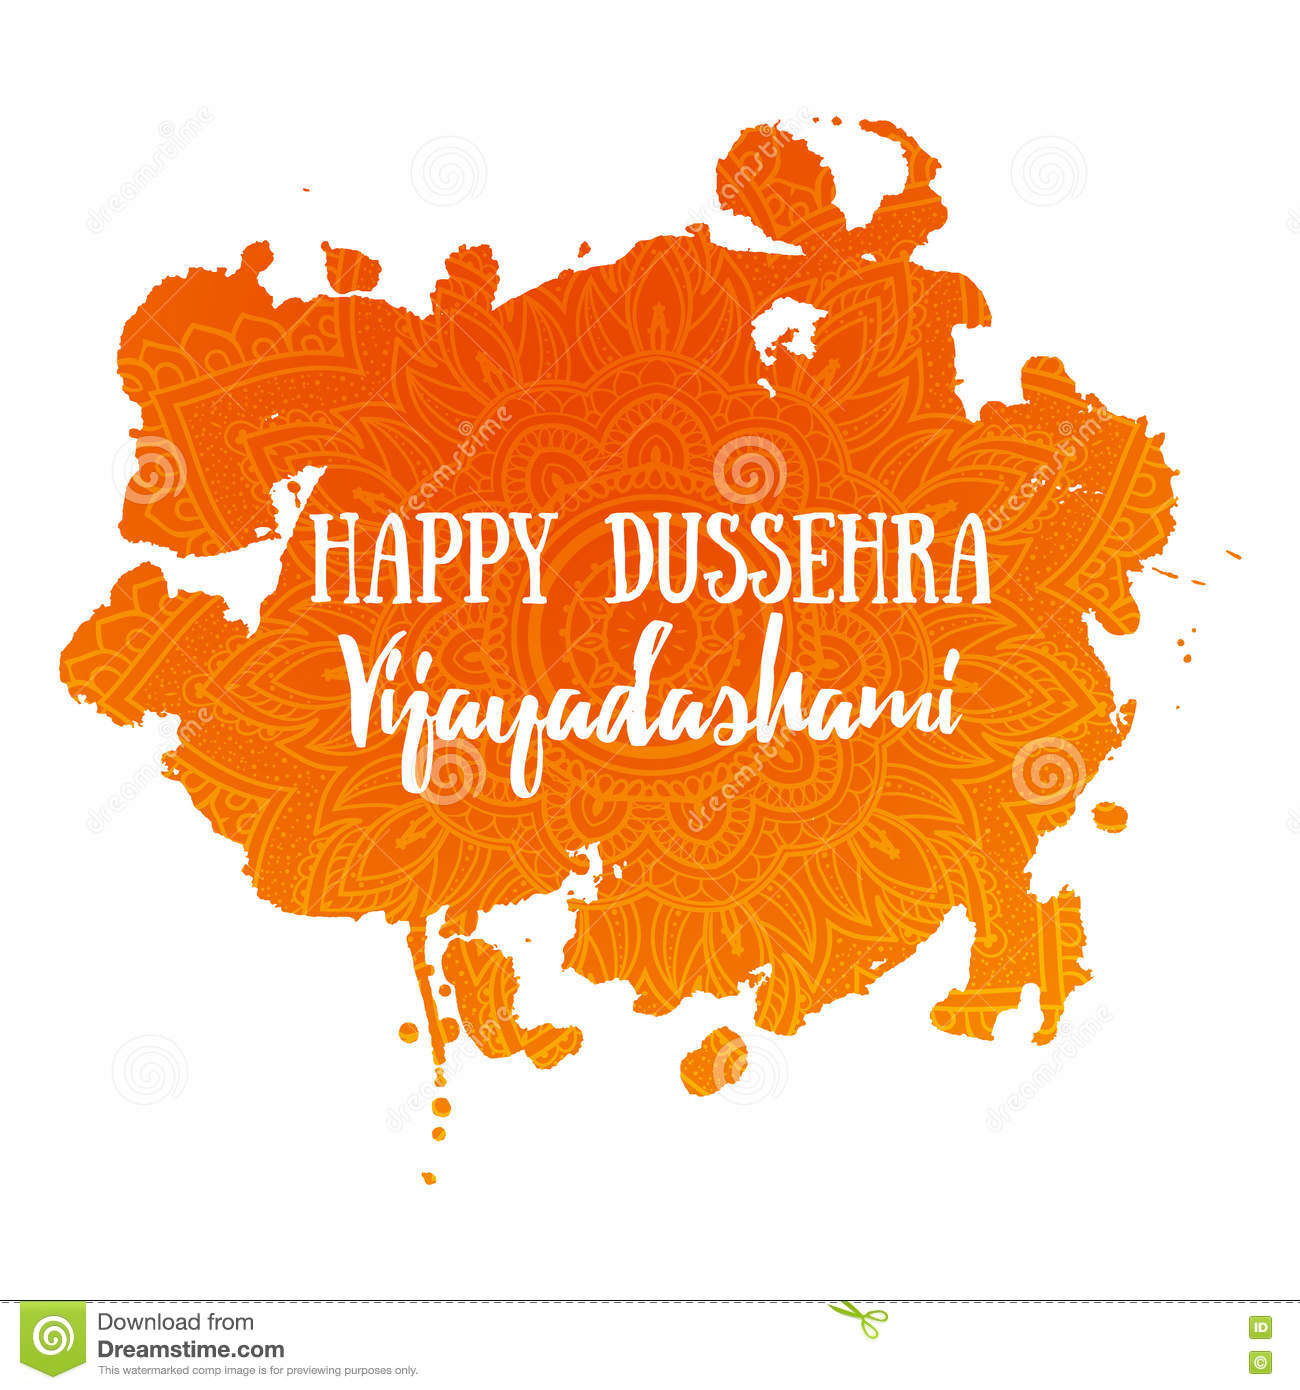 Dussehra Cartoons, Illustrations \u0026 Vector Stock Images  1093 Pictures to download from